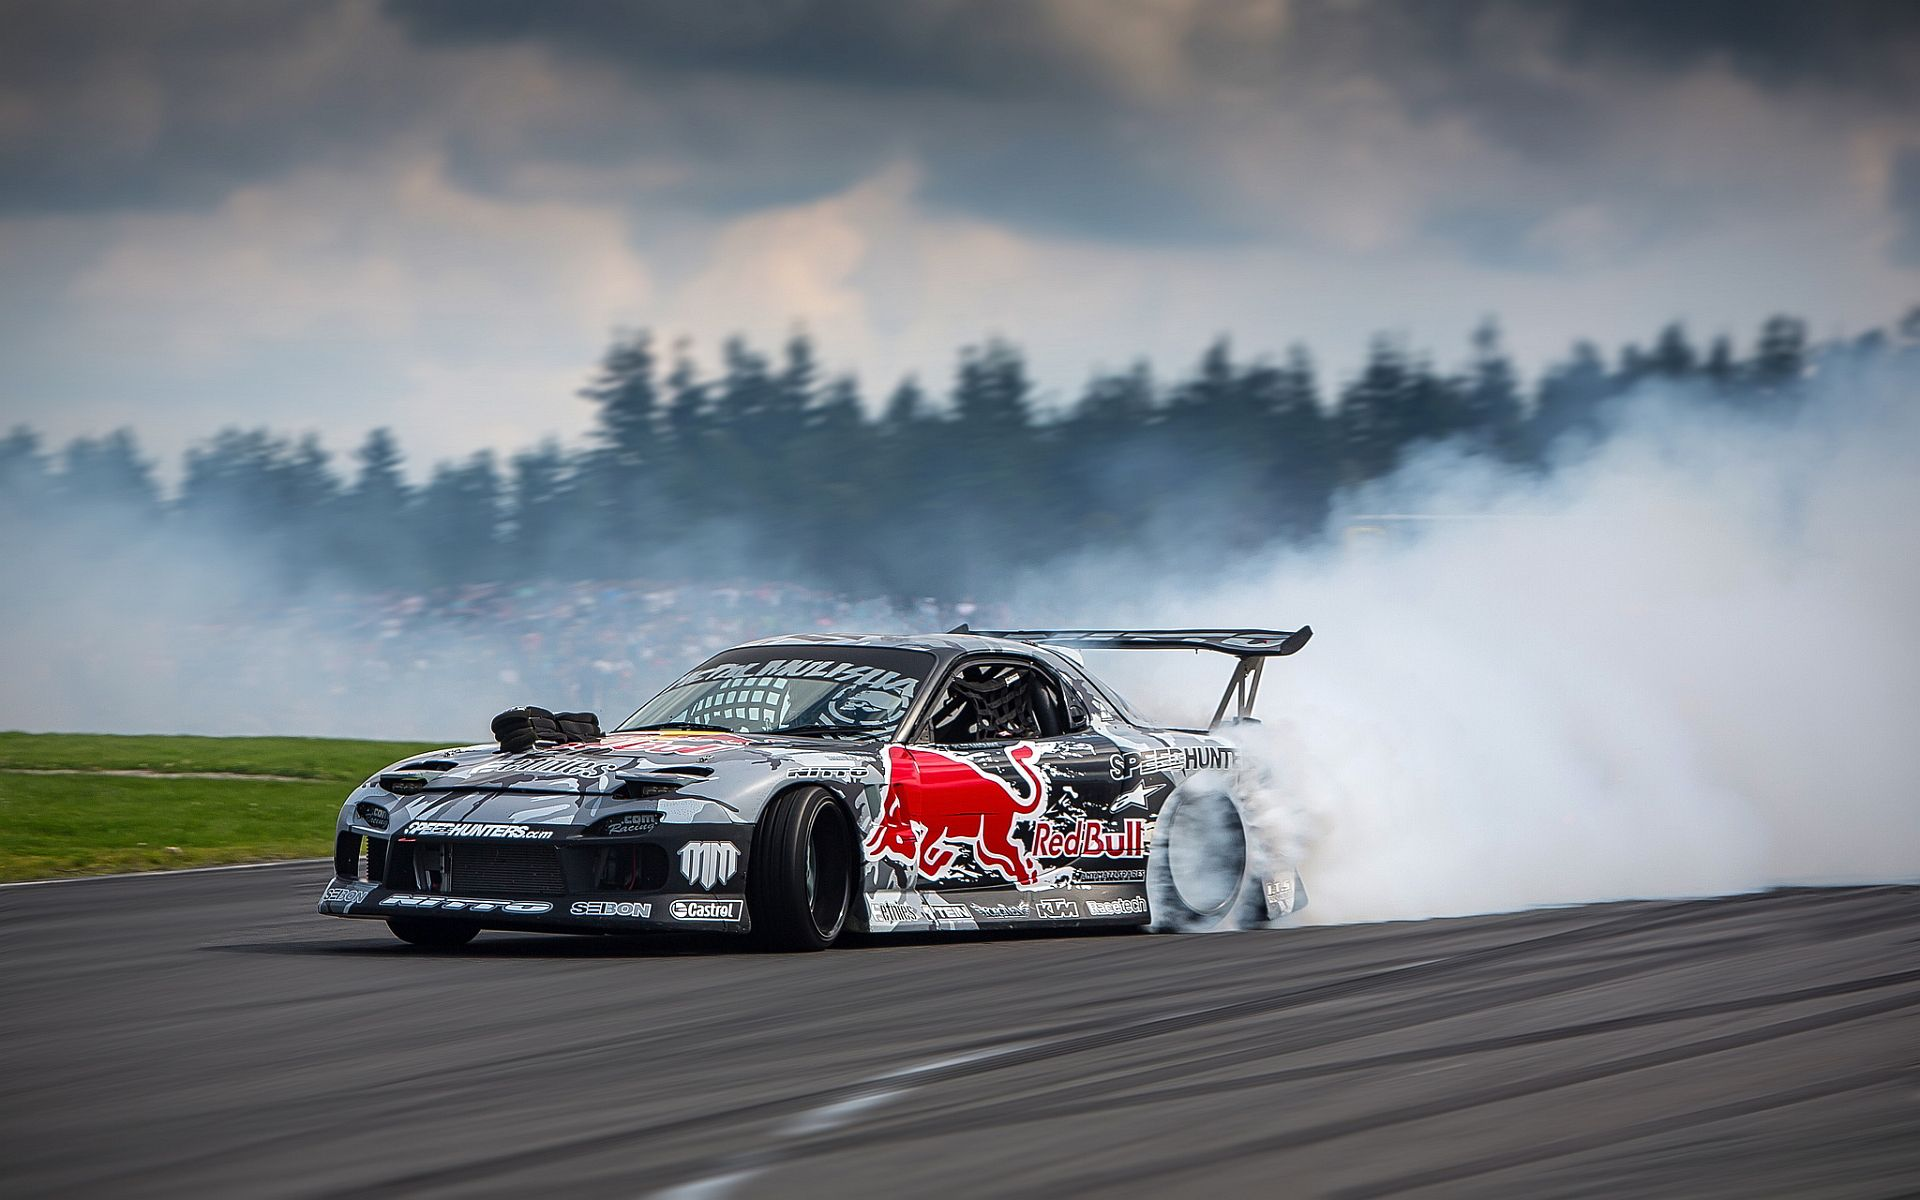 Ultra HD mazda rx7 drift  Ultra HD Abstract Wallpapers  Pinterest  Rx7 and Mazda